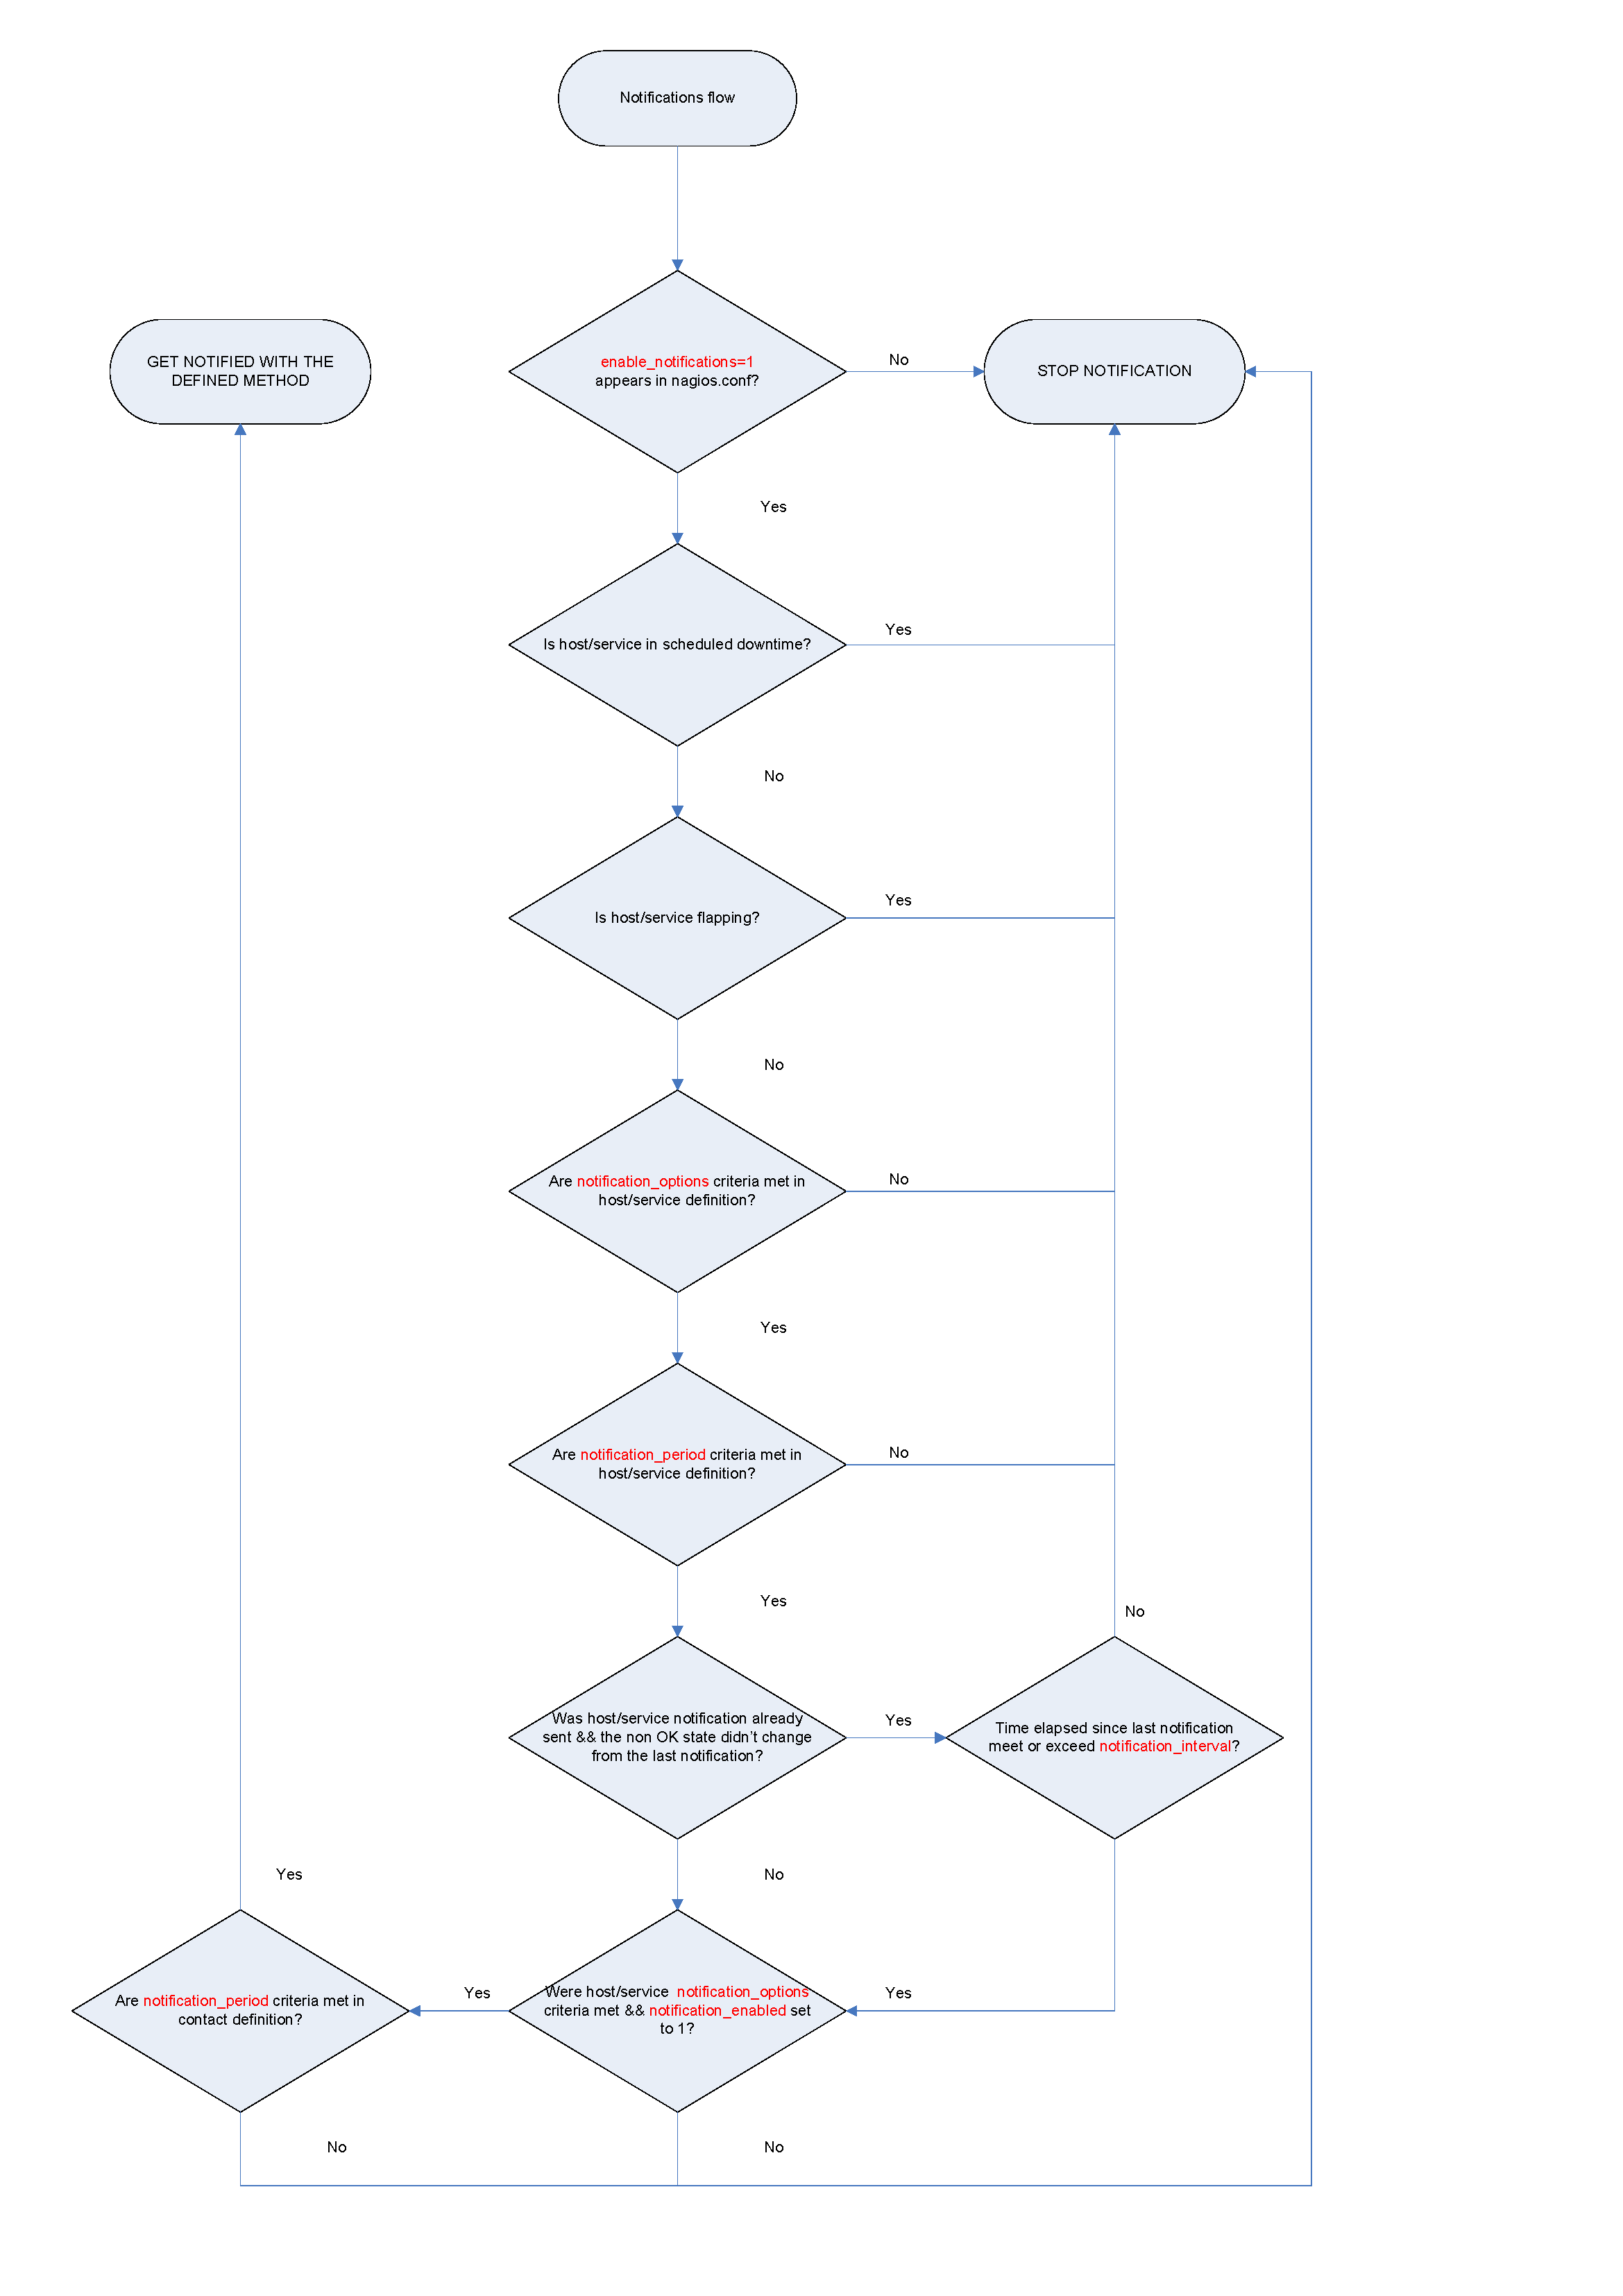 Nagios notification flowchart